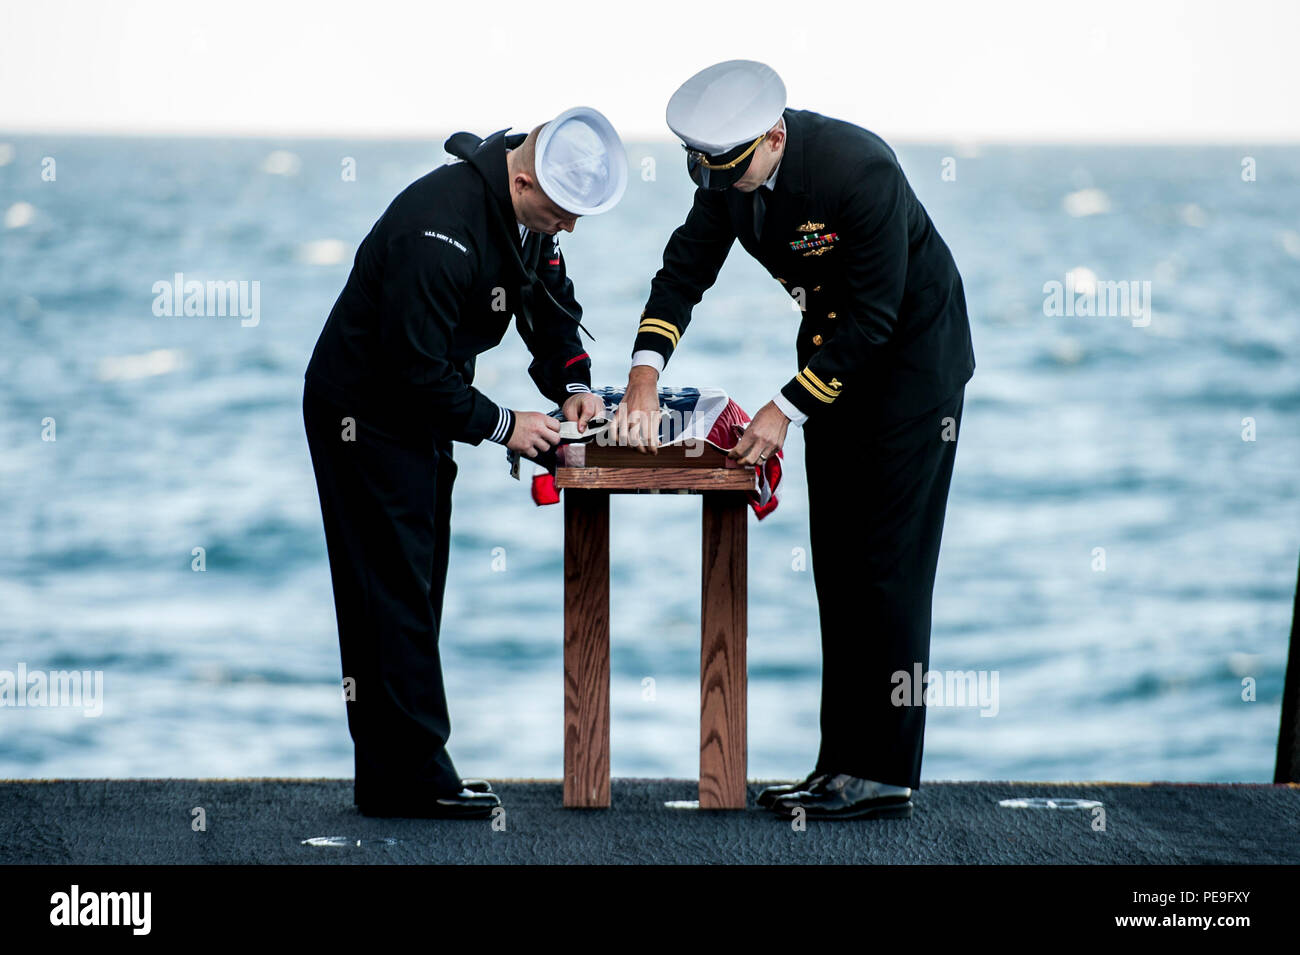 151118-N-GK939-092 ATLANTIC OCEAN (Nov. 18, 2015) Hospital Corpsman 3rd Class C. Lamacchia, left, and Lt. A. Urech participate in a burial at sea ceremony aboard aircraft carrier USS Harry S. Truman (CVN 75). Harry S. Truman Strike Group is deployed to support maritime security operations and theater security cooperation efforts in the U.S. 5th and 6th Fleet areas of operation. (U.S. Navy photo by Mass Communication Specialist Seaman L. A. Preston/Released) - Stock Image